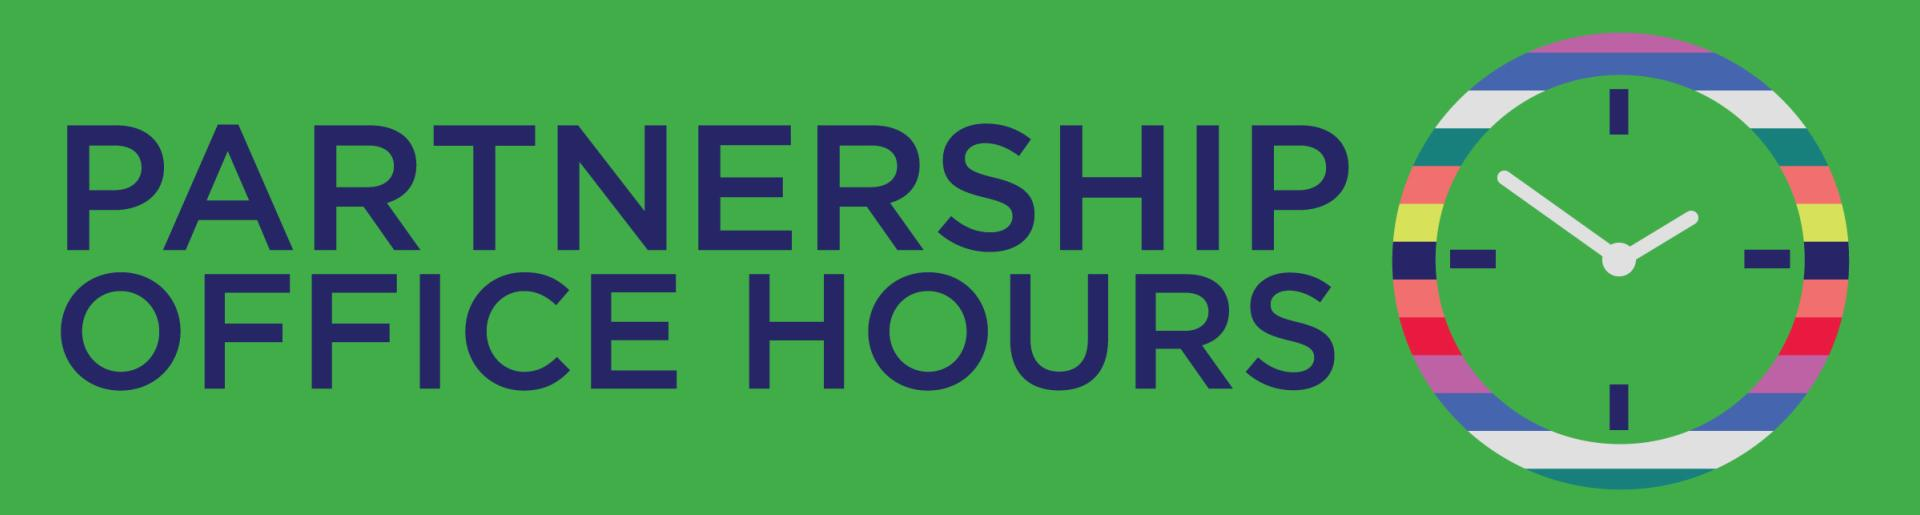 Partnership Office Hours Header